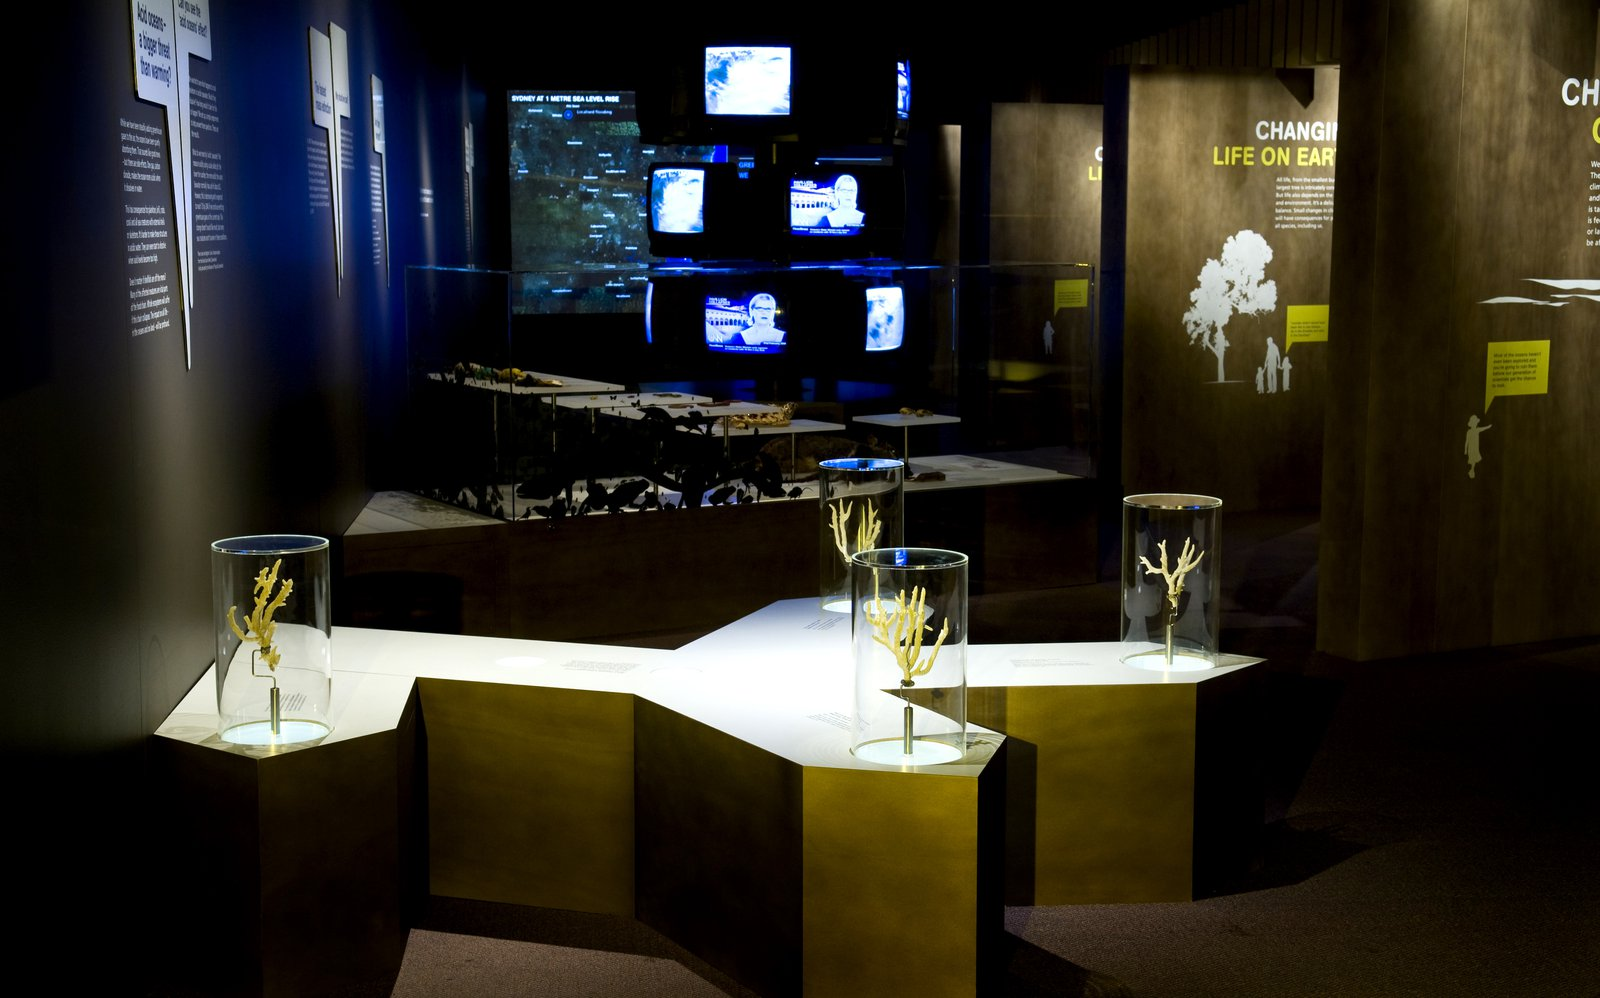 climate change exhibition